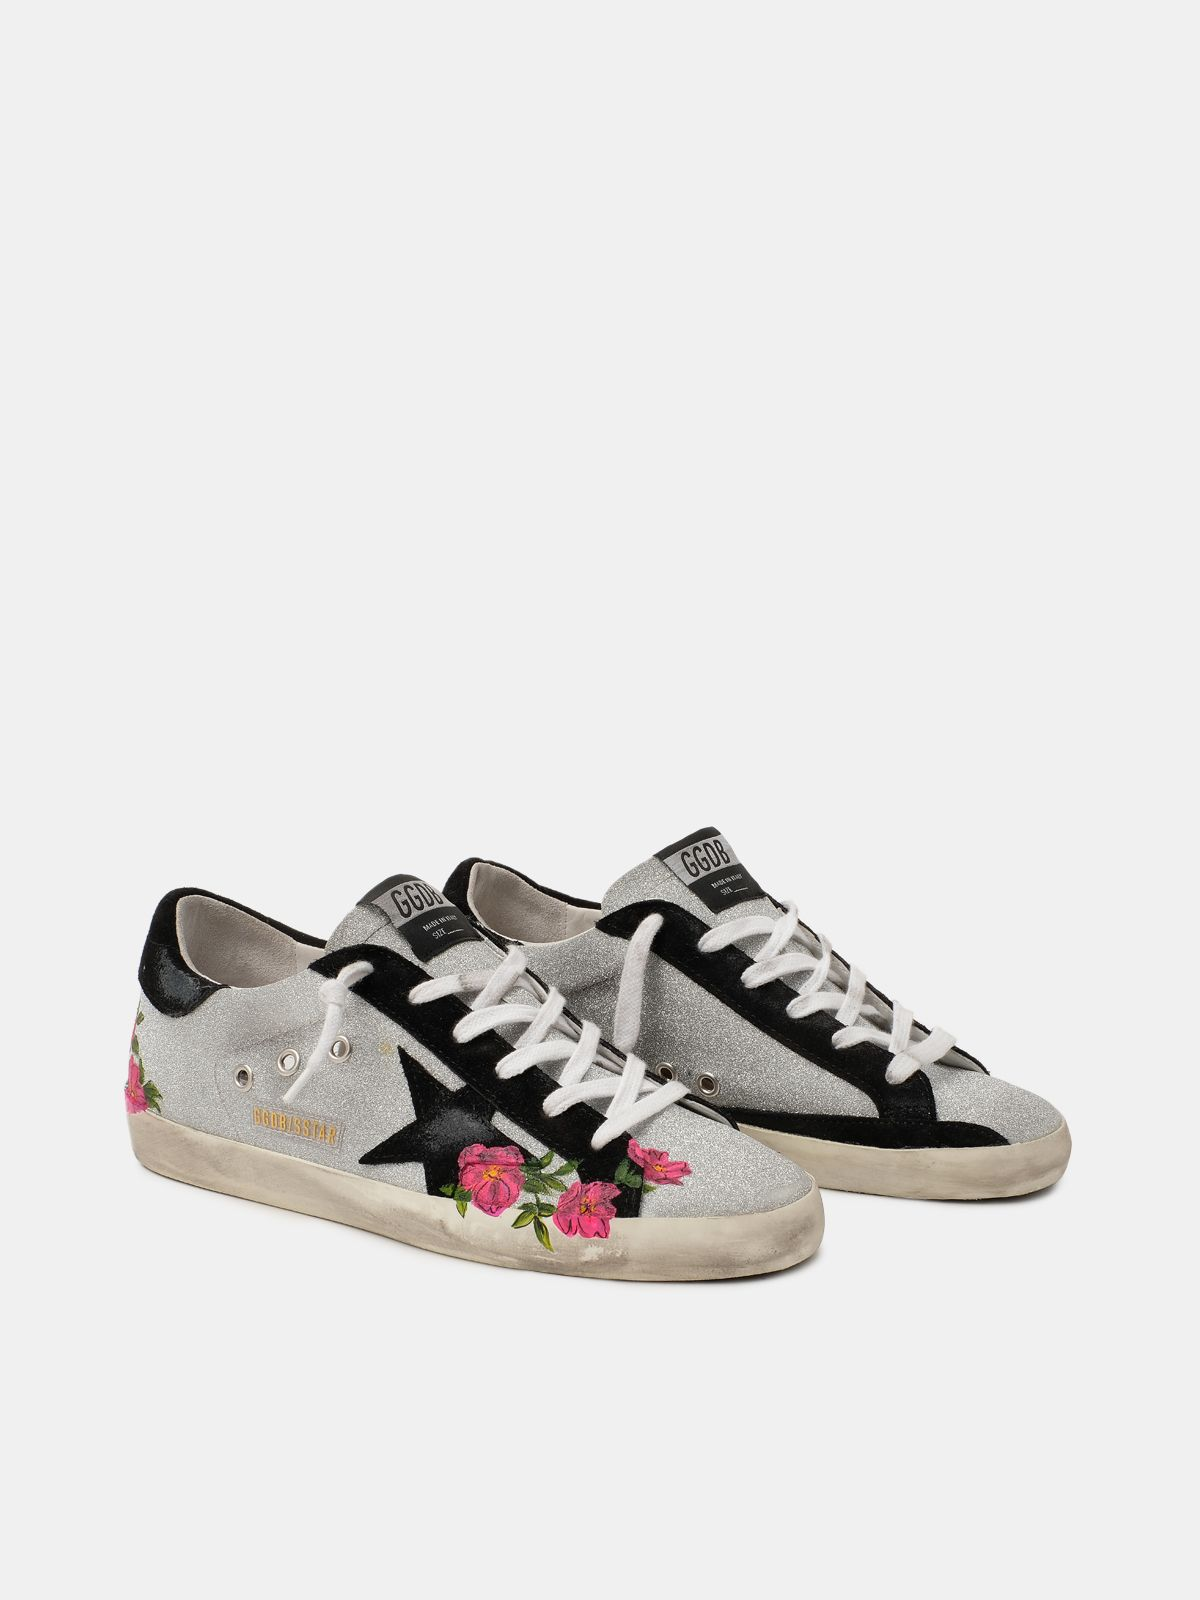 Golden Goose - Sneakers Super-Star argentate con rose dipinte a mano in